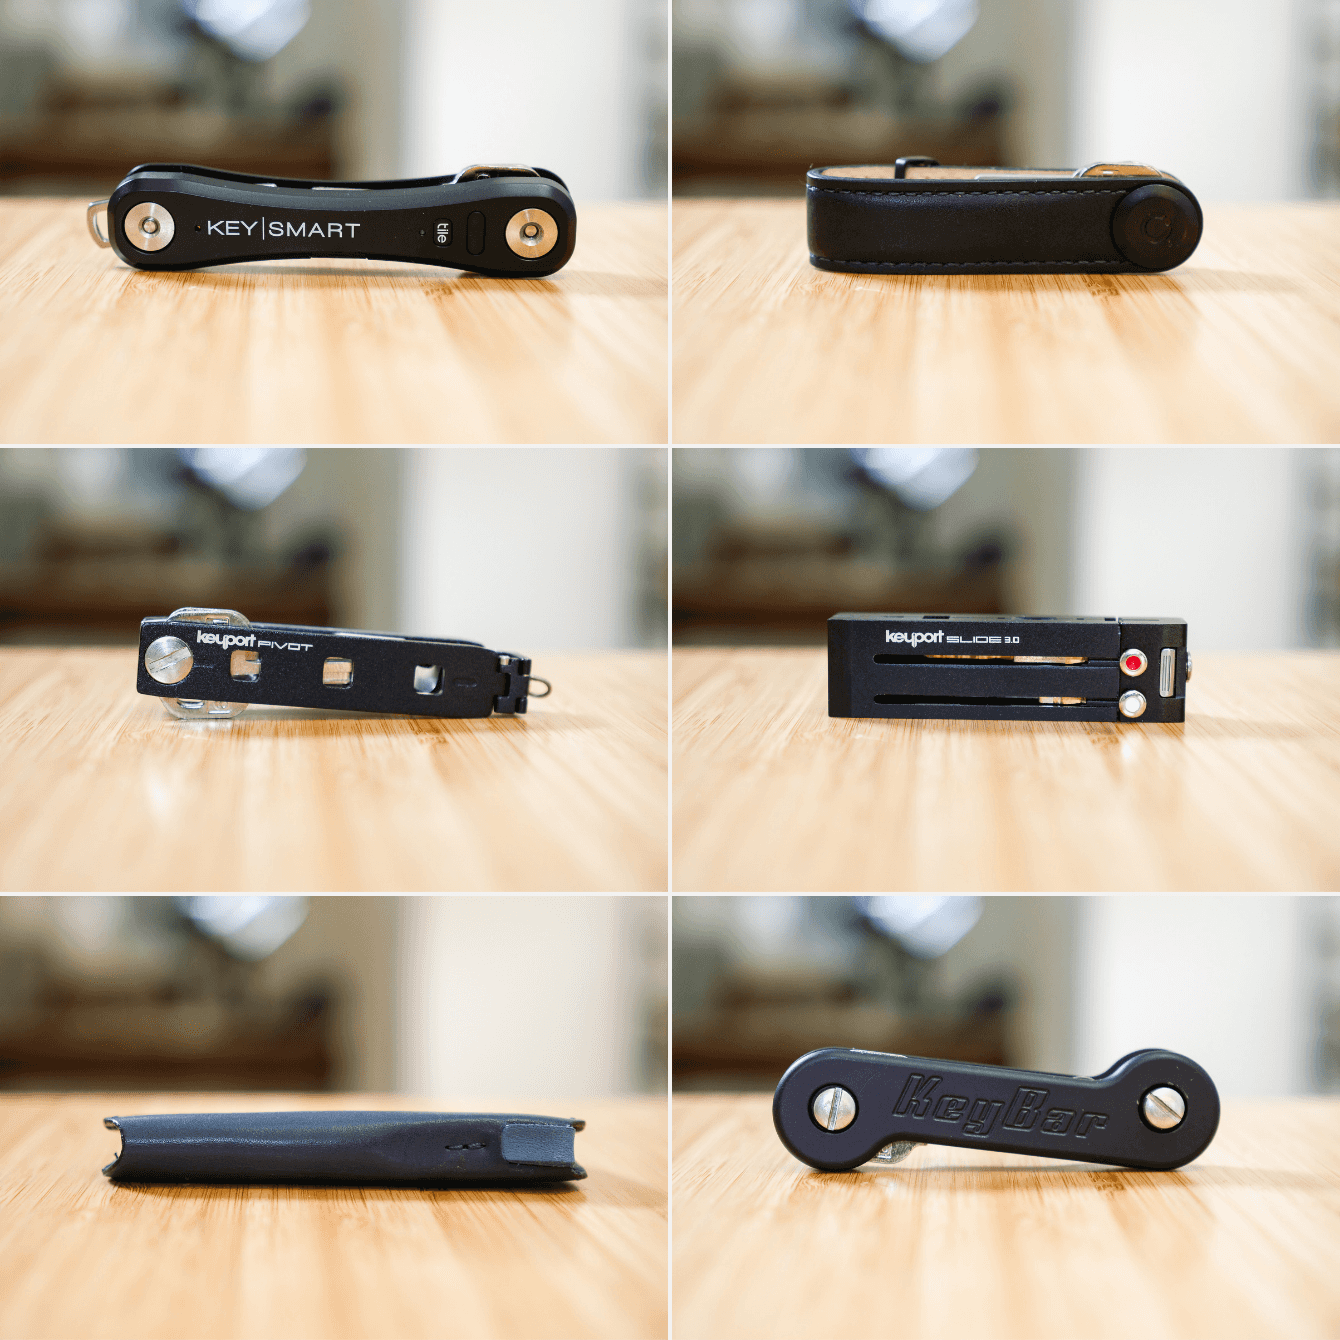 The Best Key Organizer - Top 5 Brands for 2019